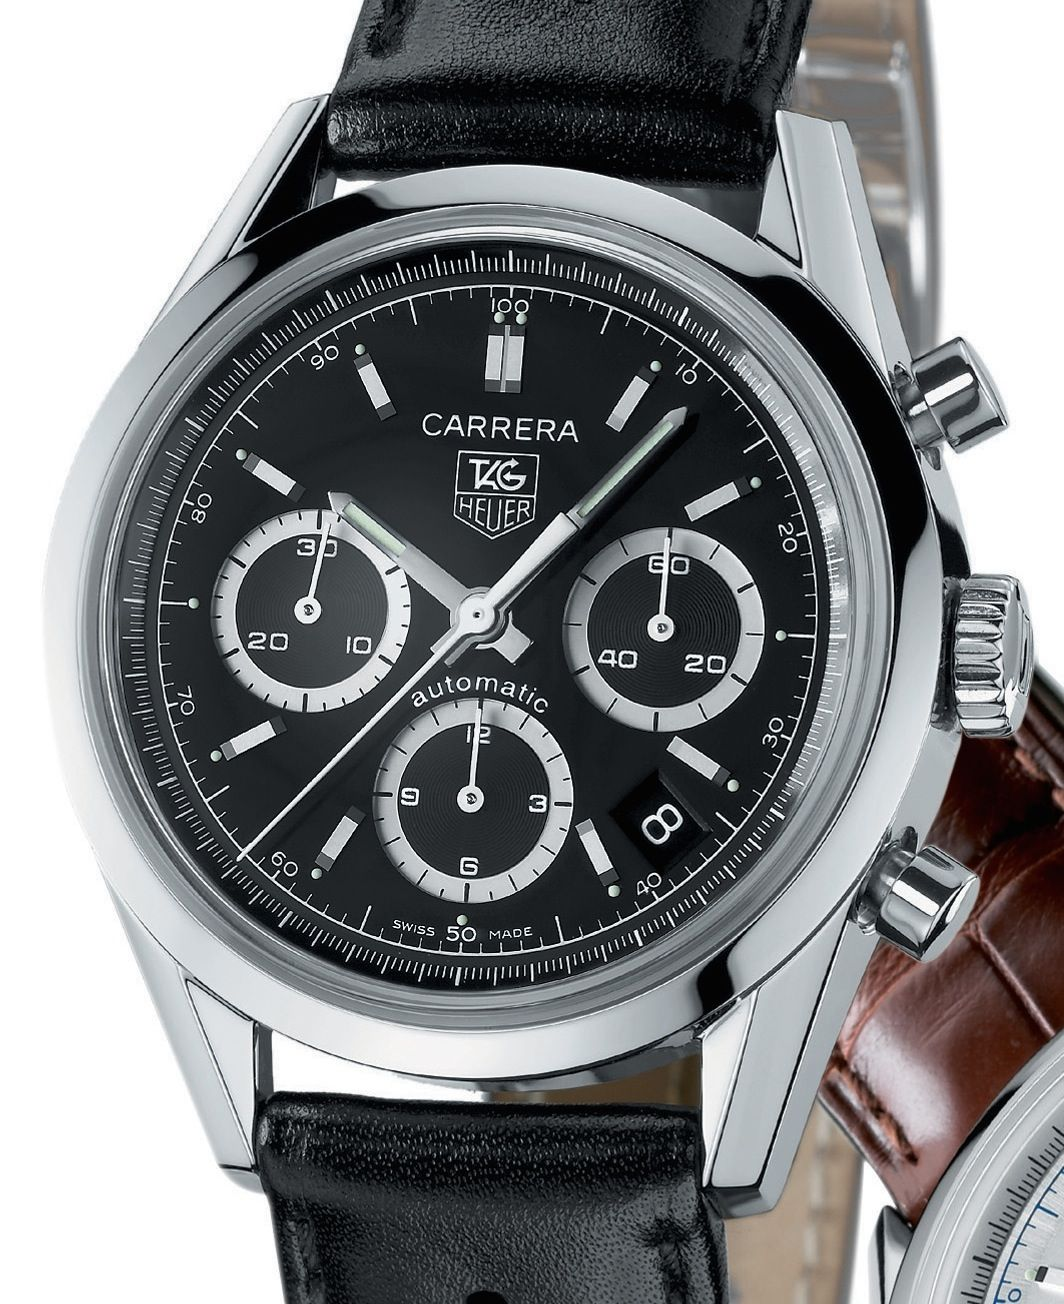 Tag Heurer carrera watch prestigious iconic mens watches ...